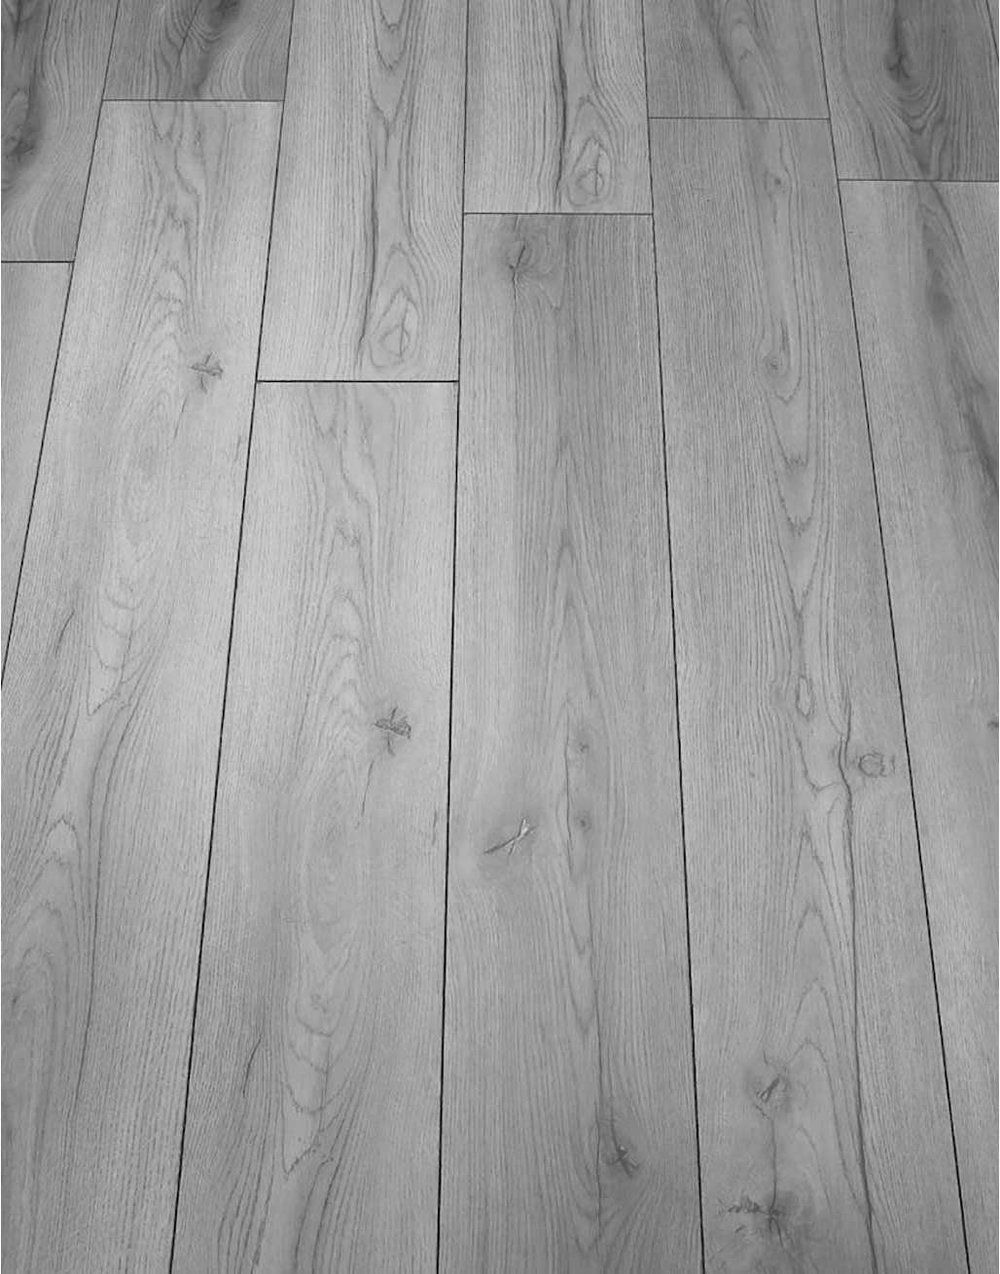 Flooring - From carpet to hardwood flooring to waterproof LVP, we have the flooring solution for your property.